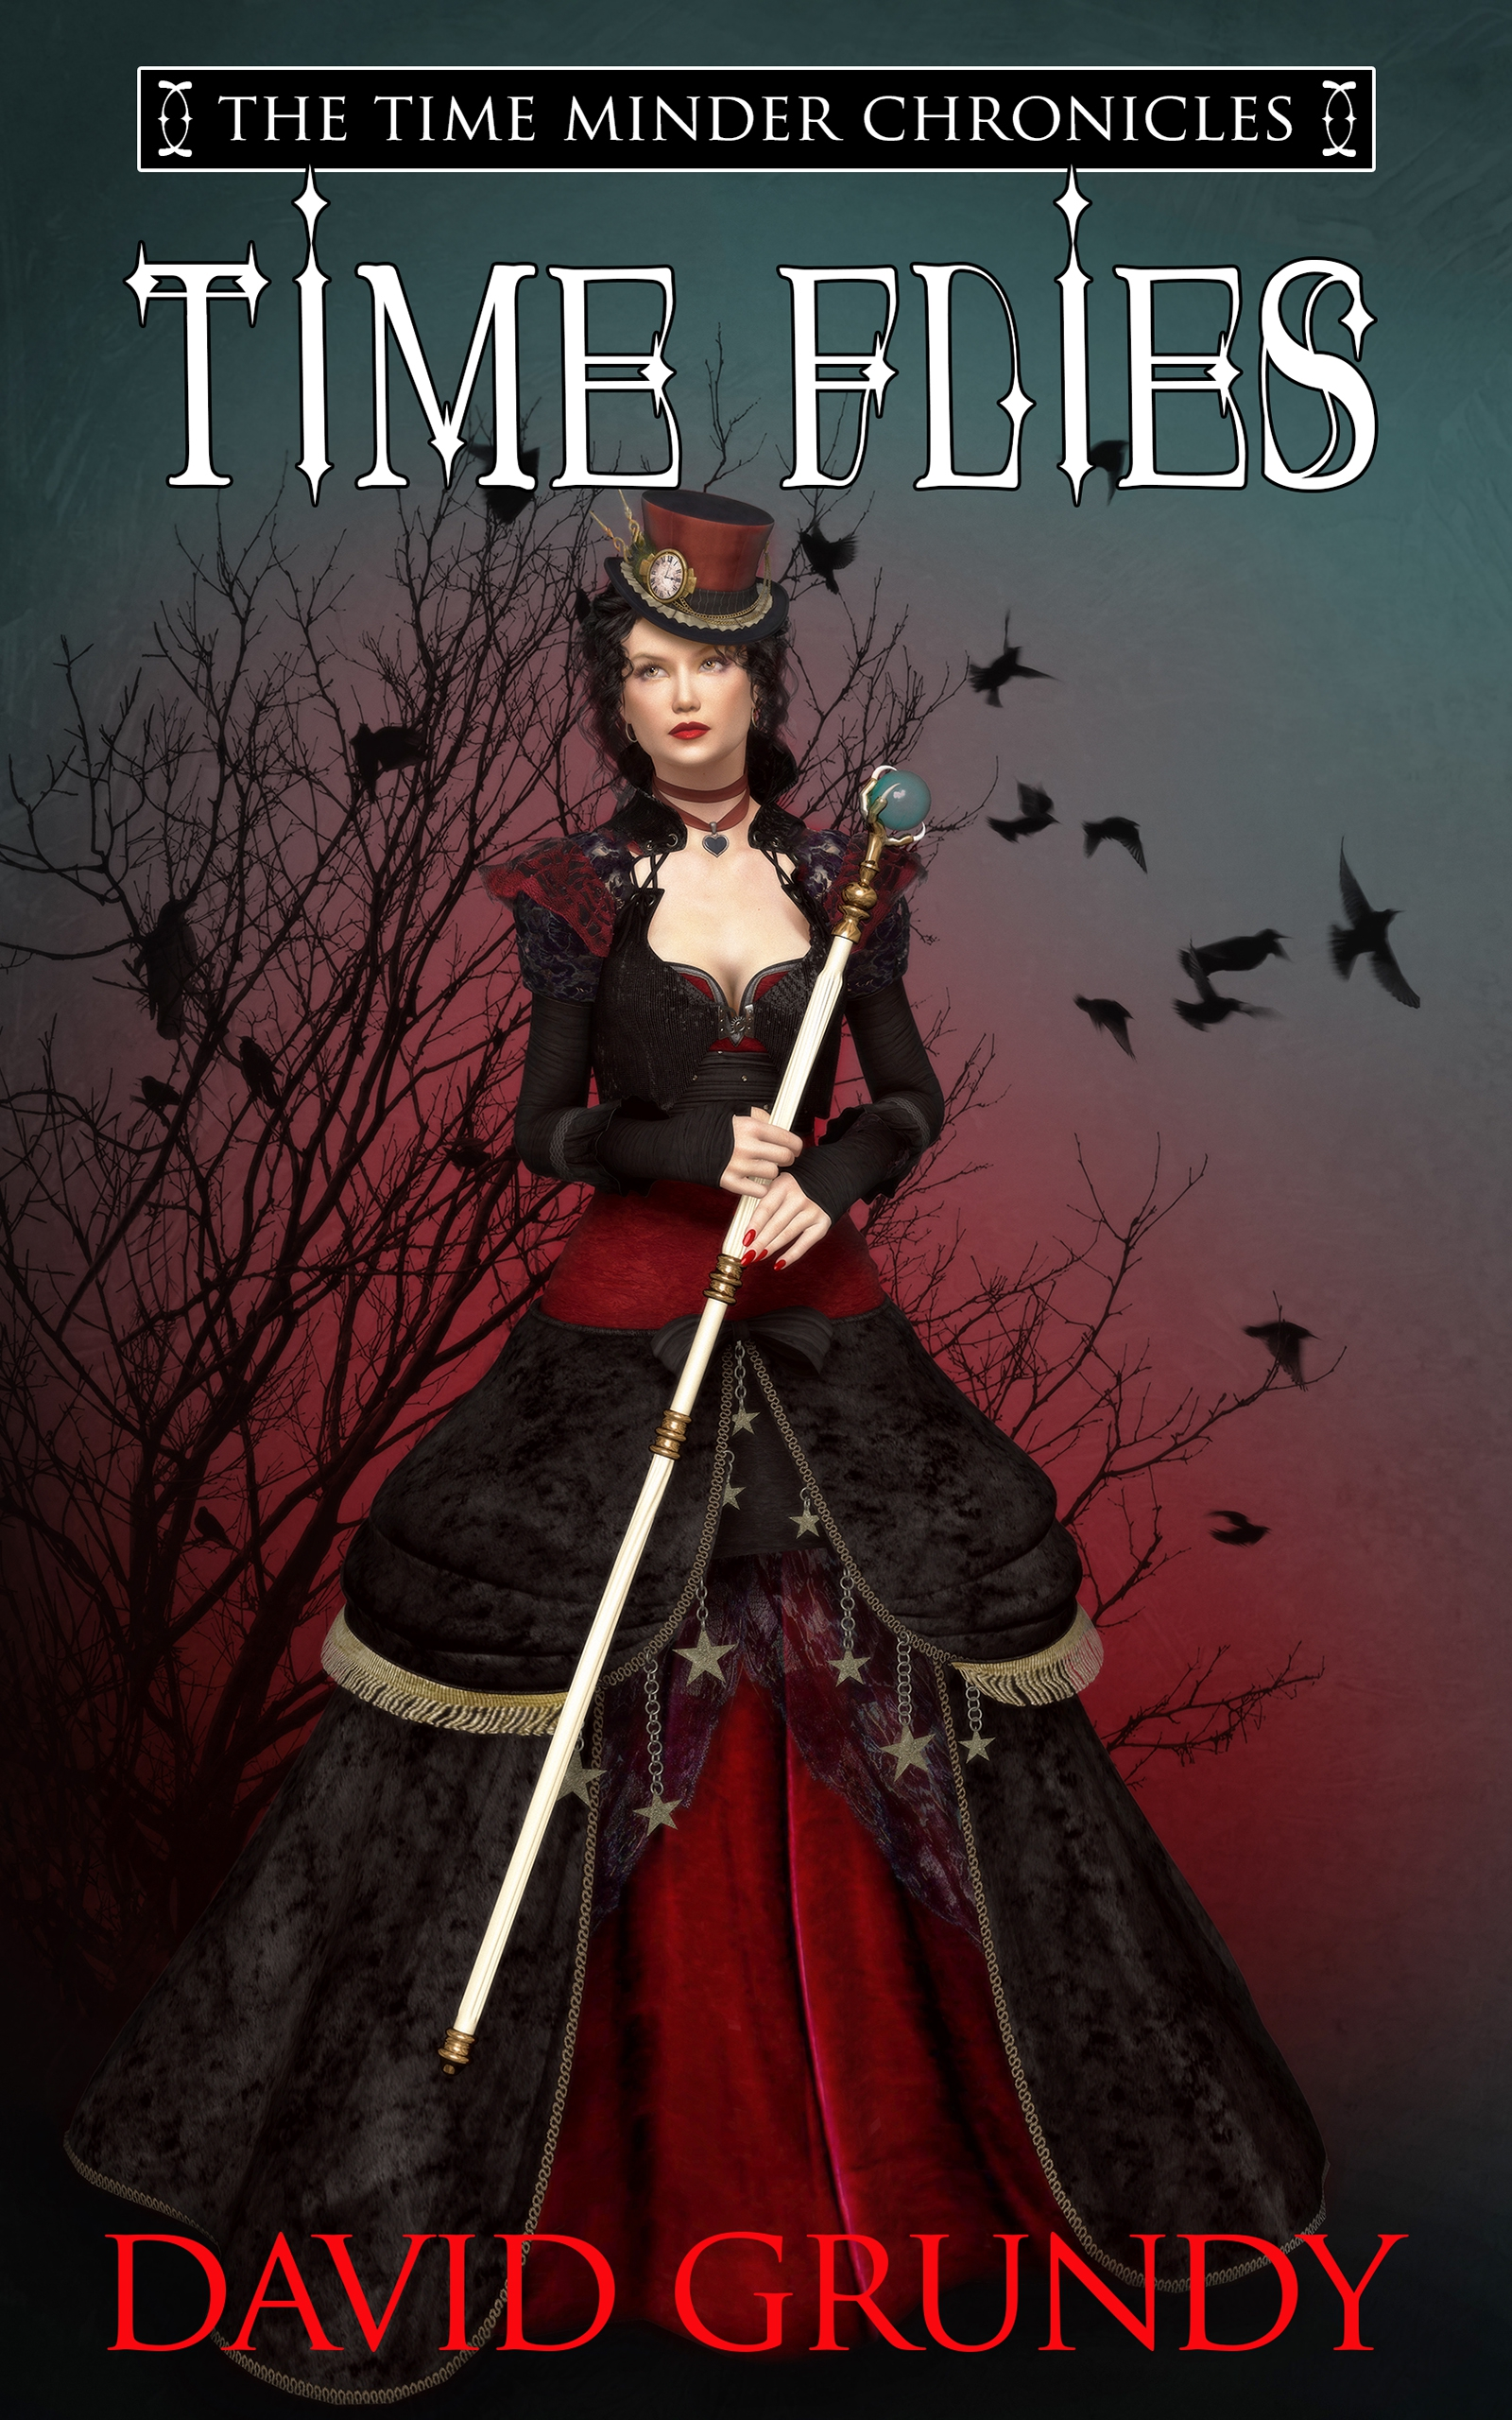 Time Flies book cover design by Corvid Design